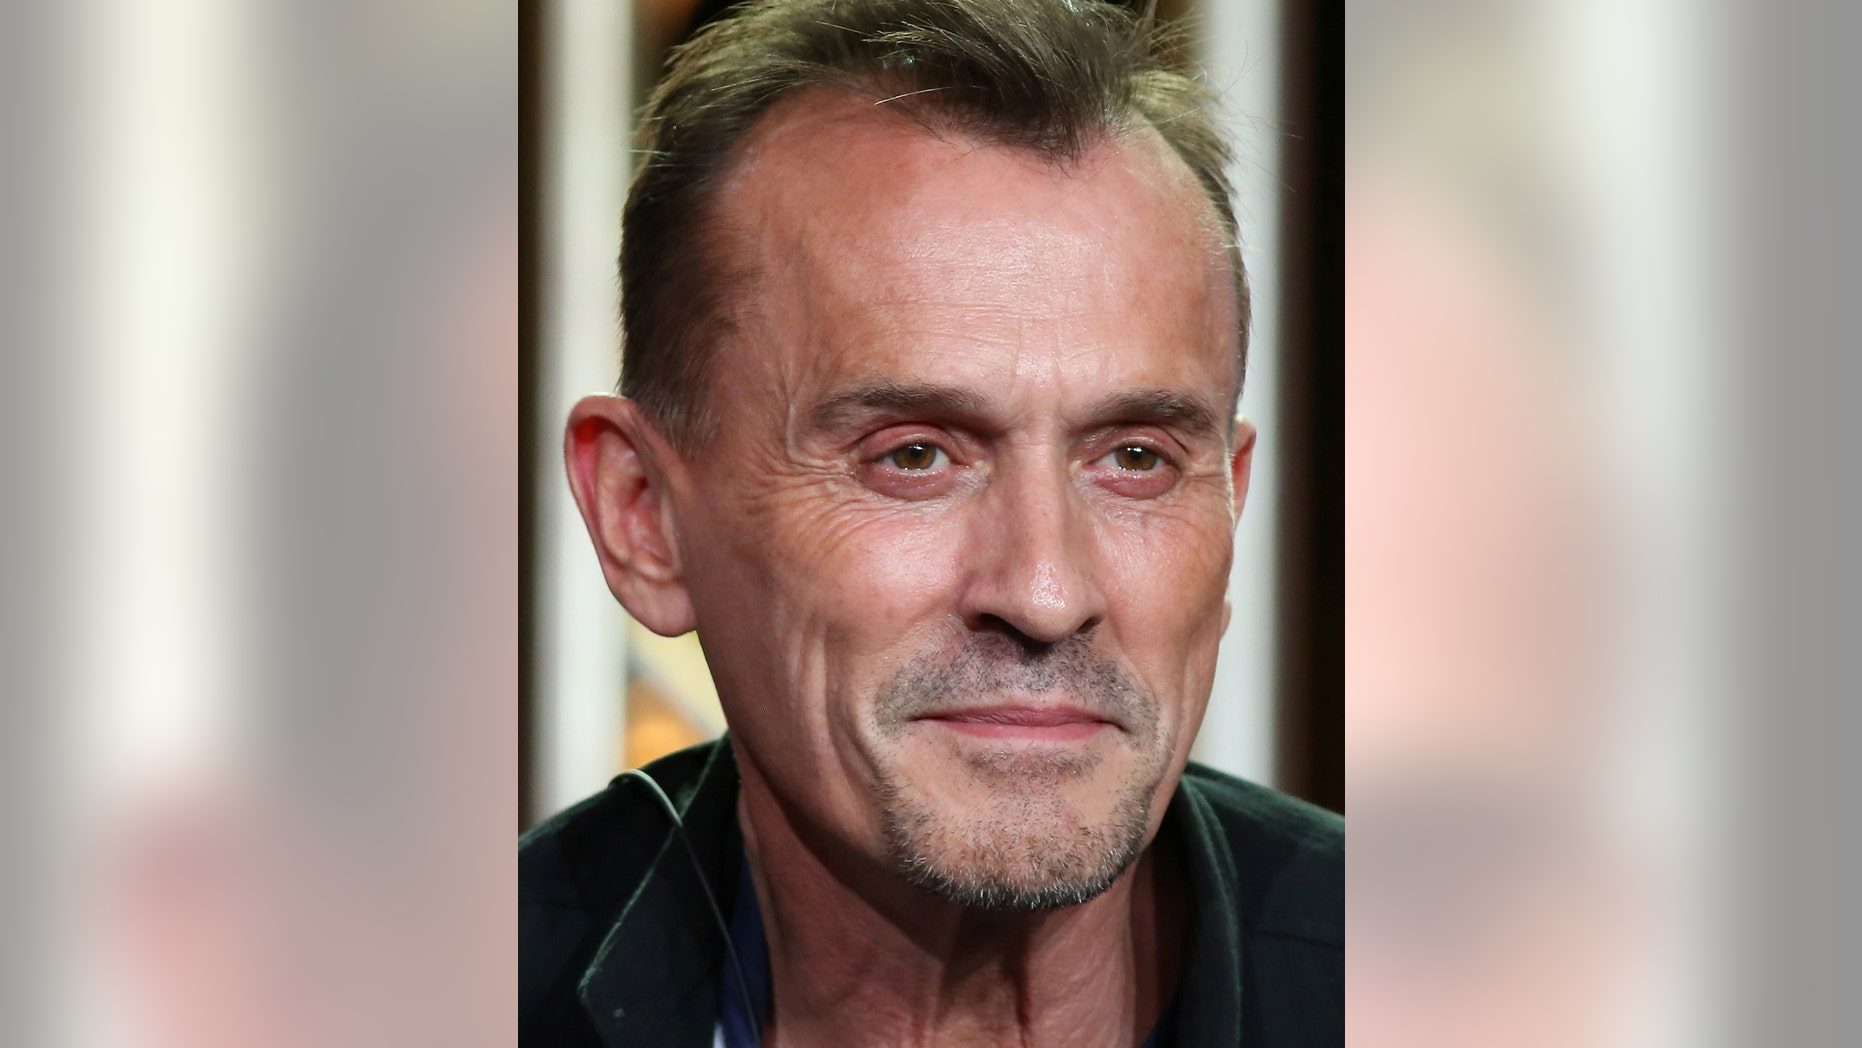 """Robert Knepper has been accused of sexual assault by a costume designer. The """"Prison Break"""" star has denied the claim."""